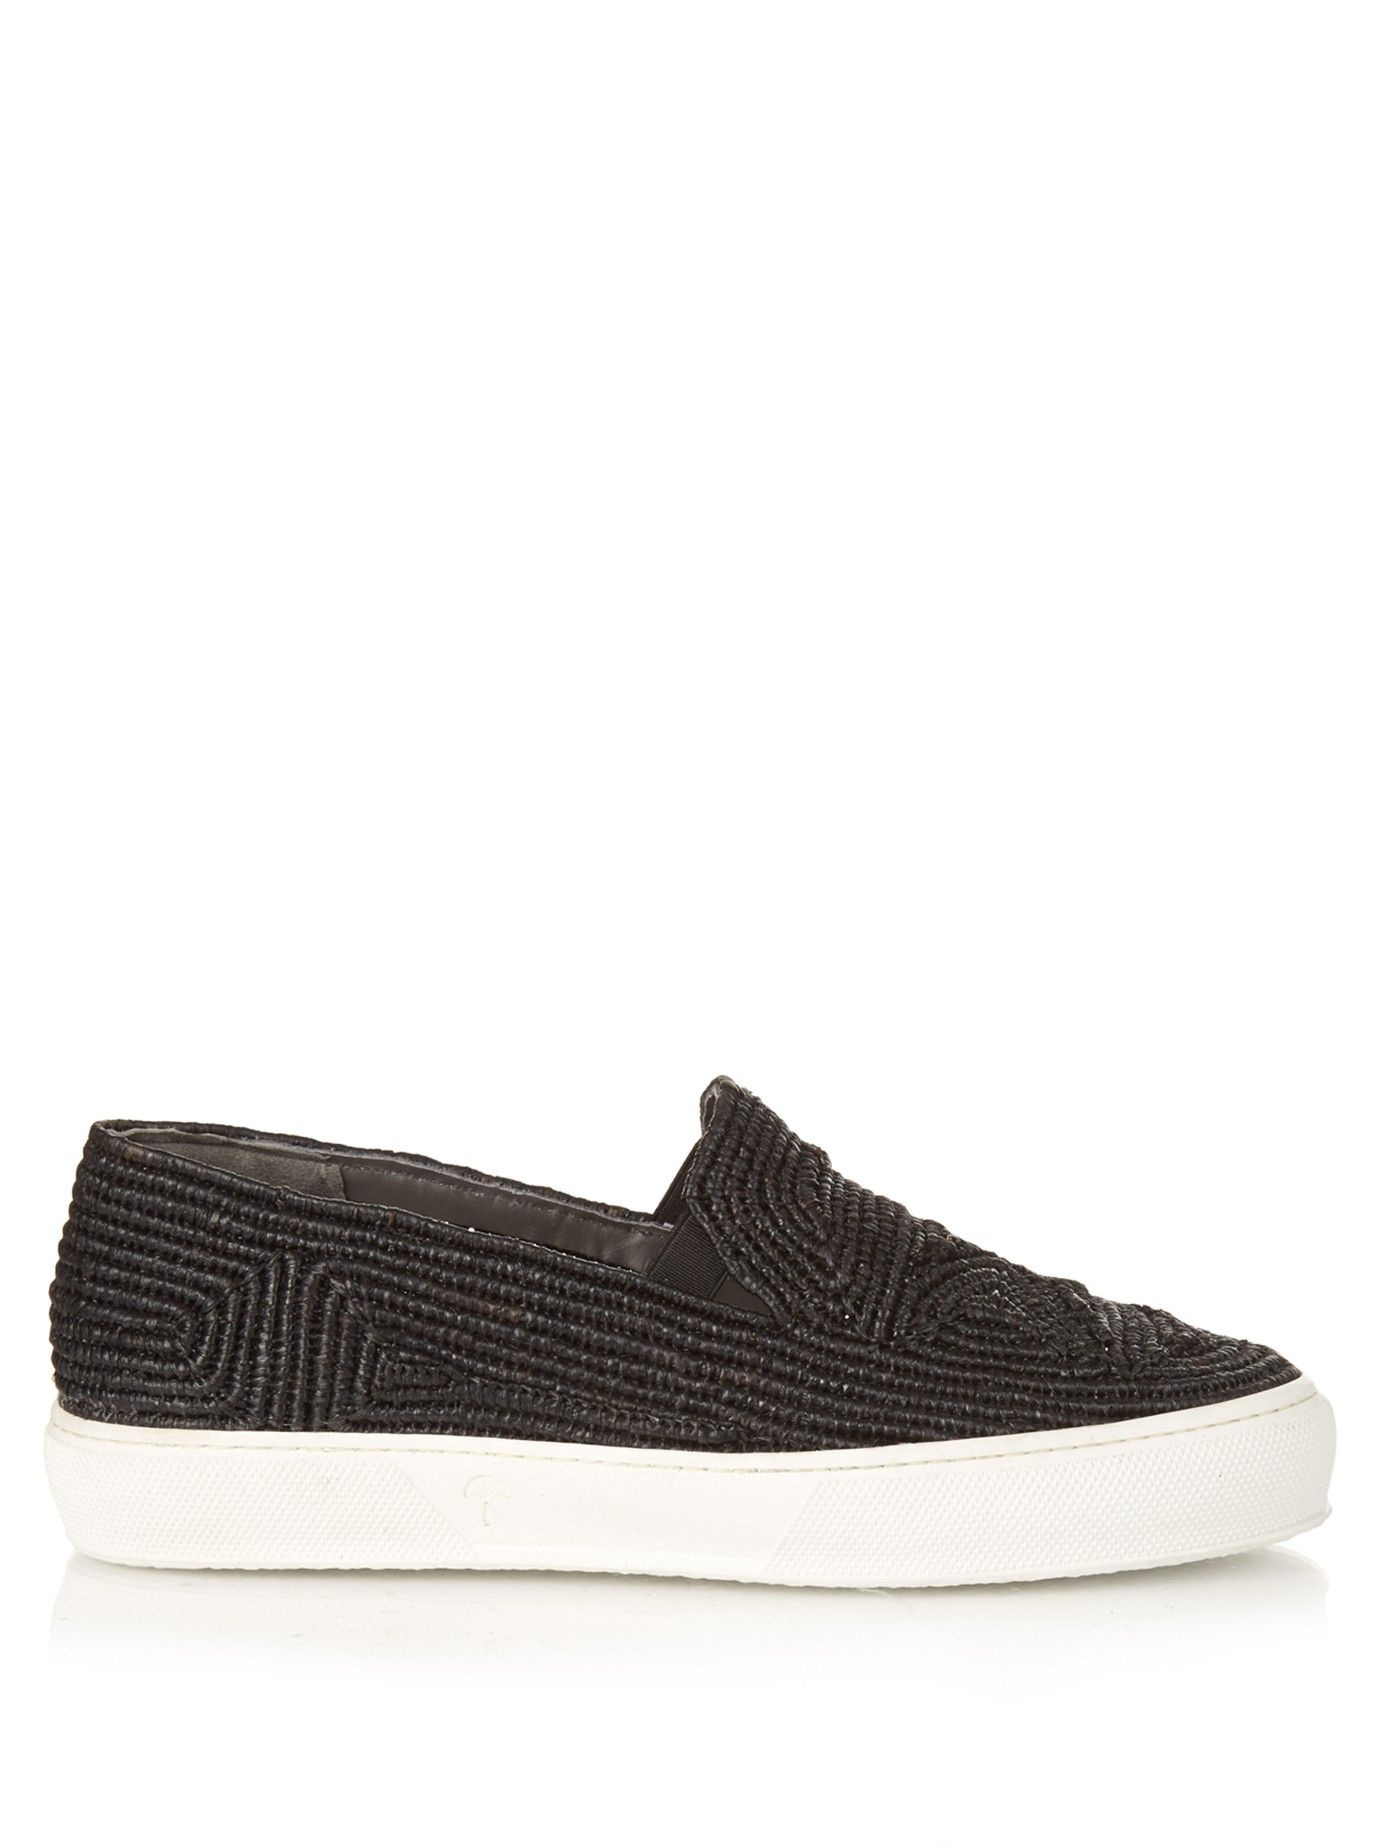 Raffia slip-on trainers | Robert Clergerie | MATCHESFASHION.COM